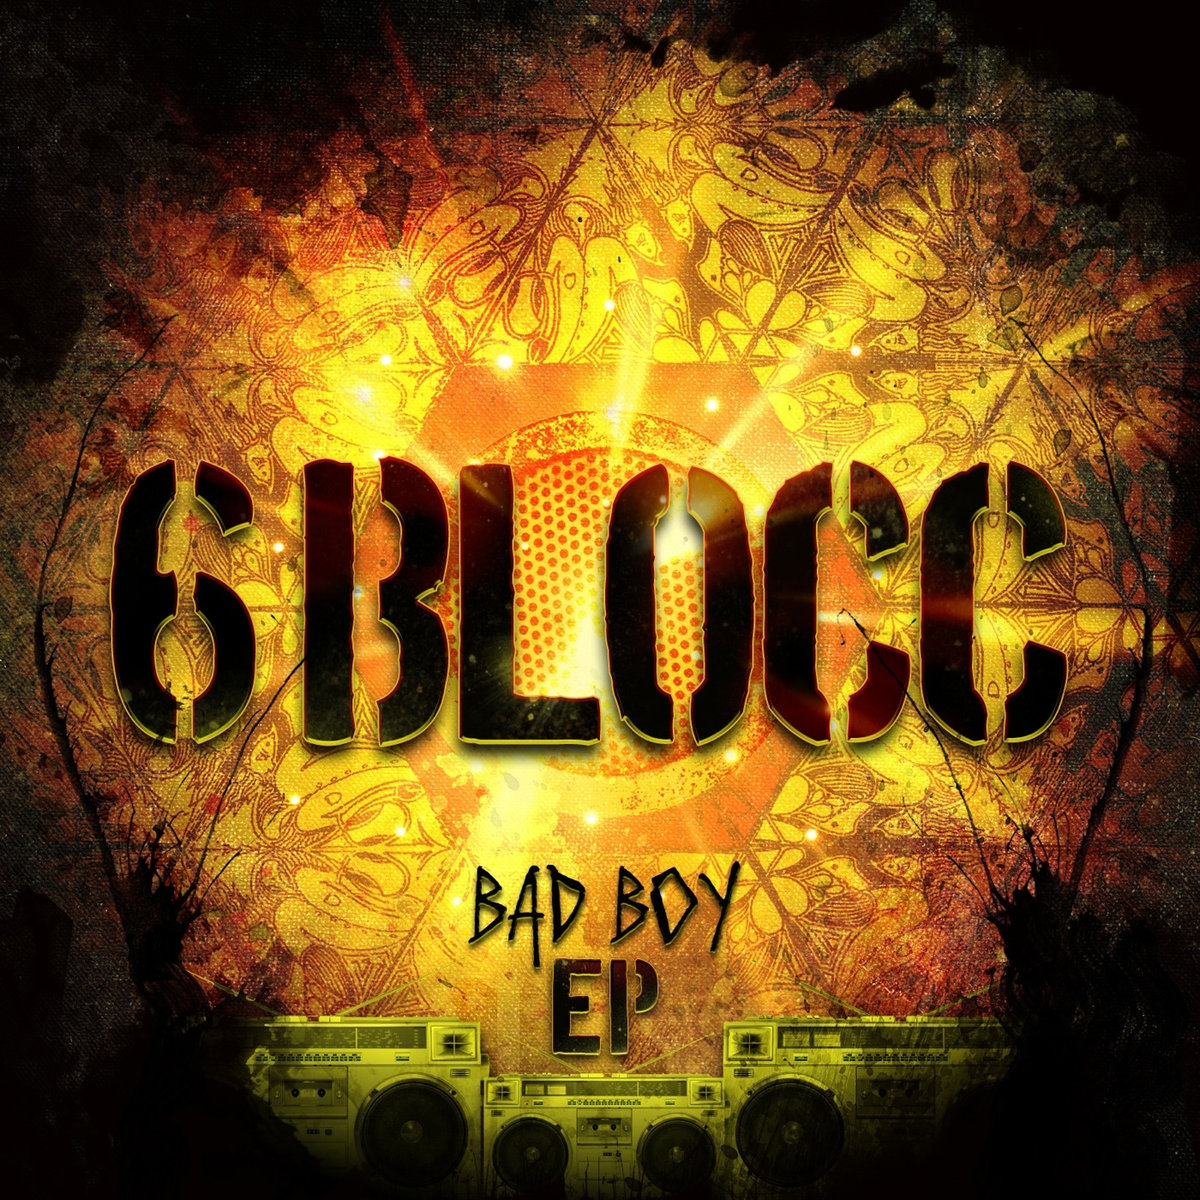 6Blocc - Bad Boy (Blackheart Remix) @ 'Bad Boy' album (electronic, dubstep)